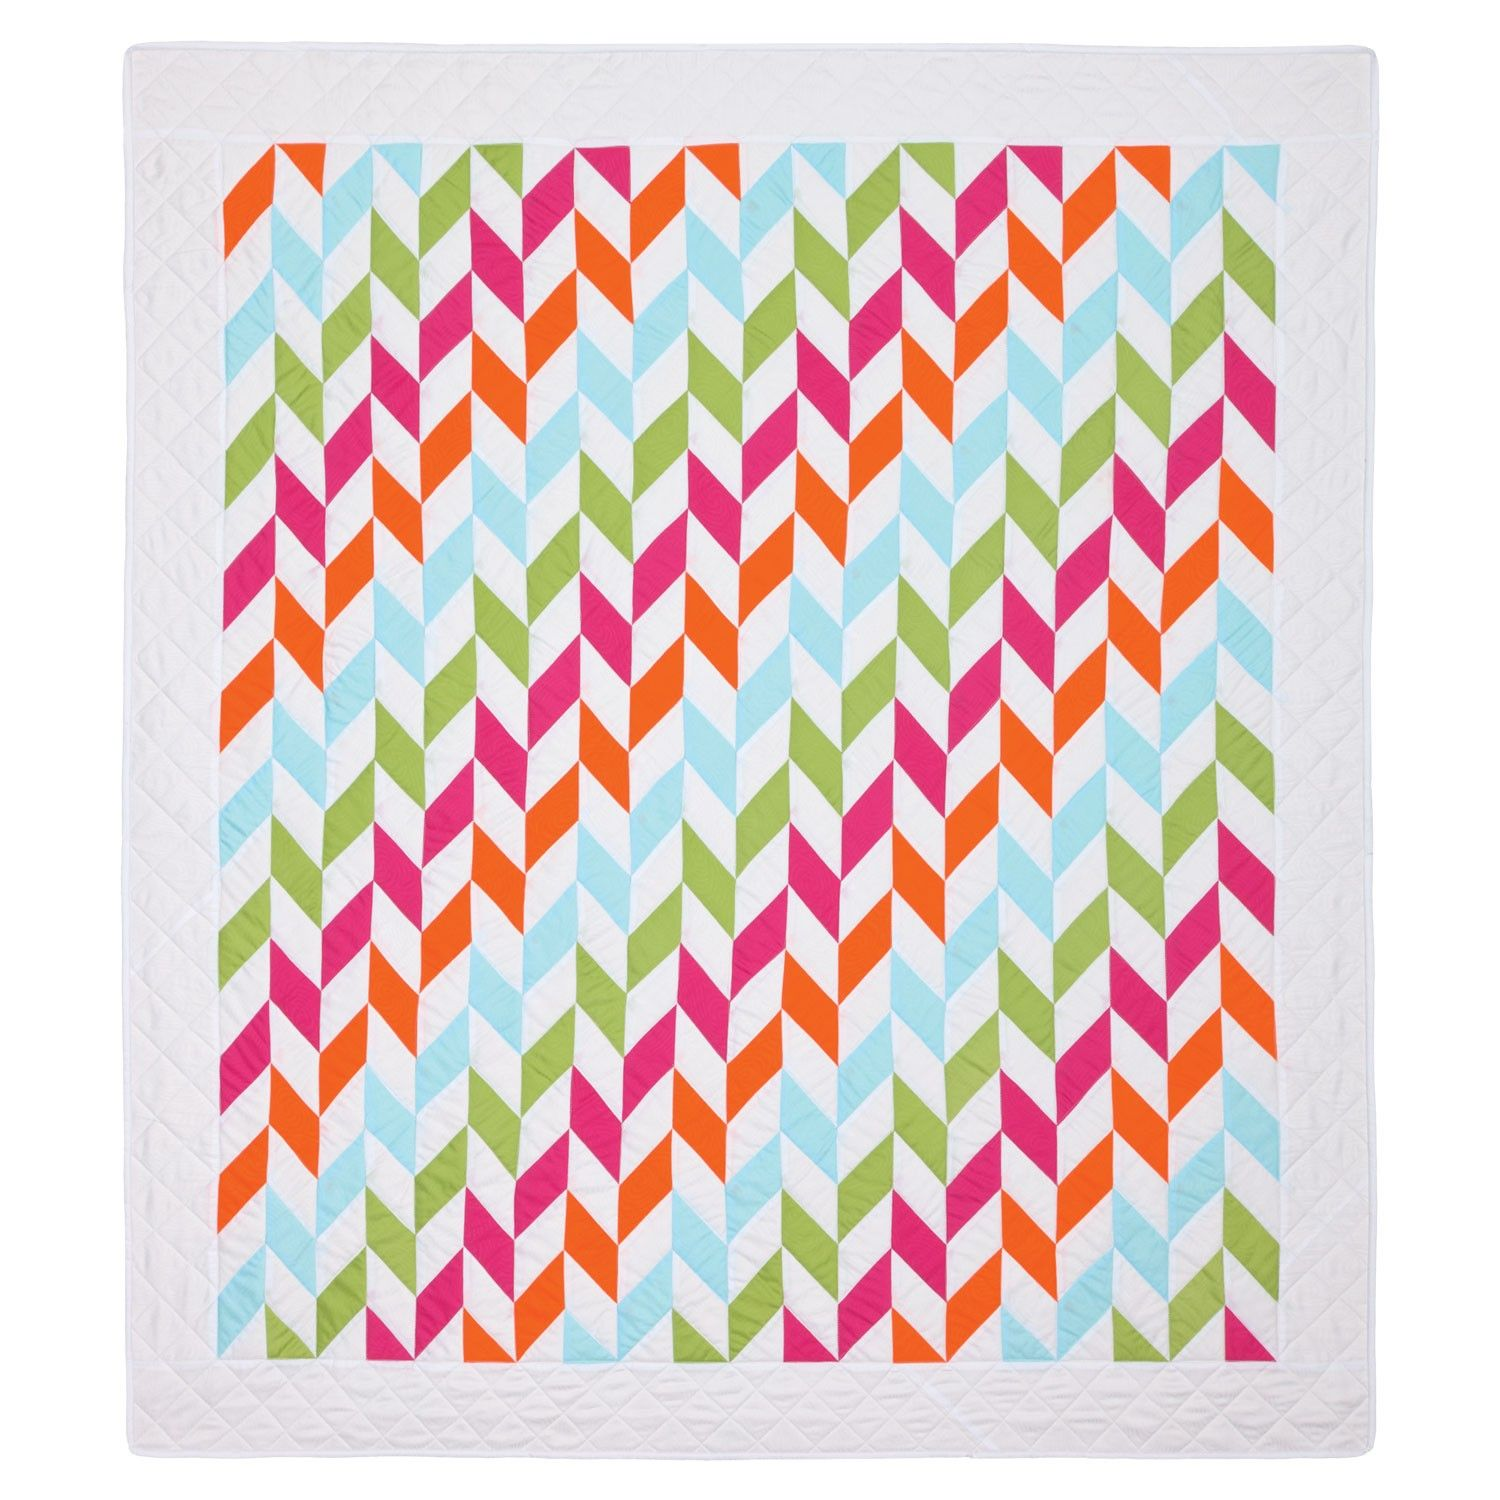 GO! Braided Beauty Quilt Pattern made with the parallelogram die ... : parallelogram quilt pattern - Adamdwight.com